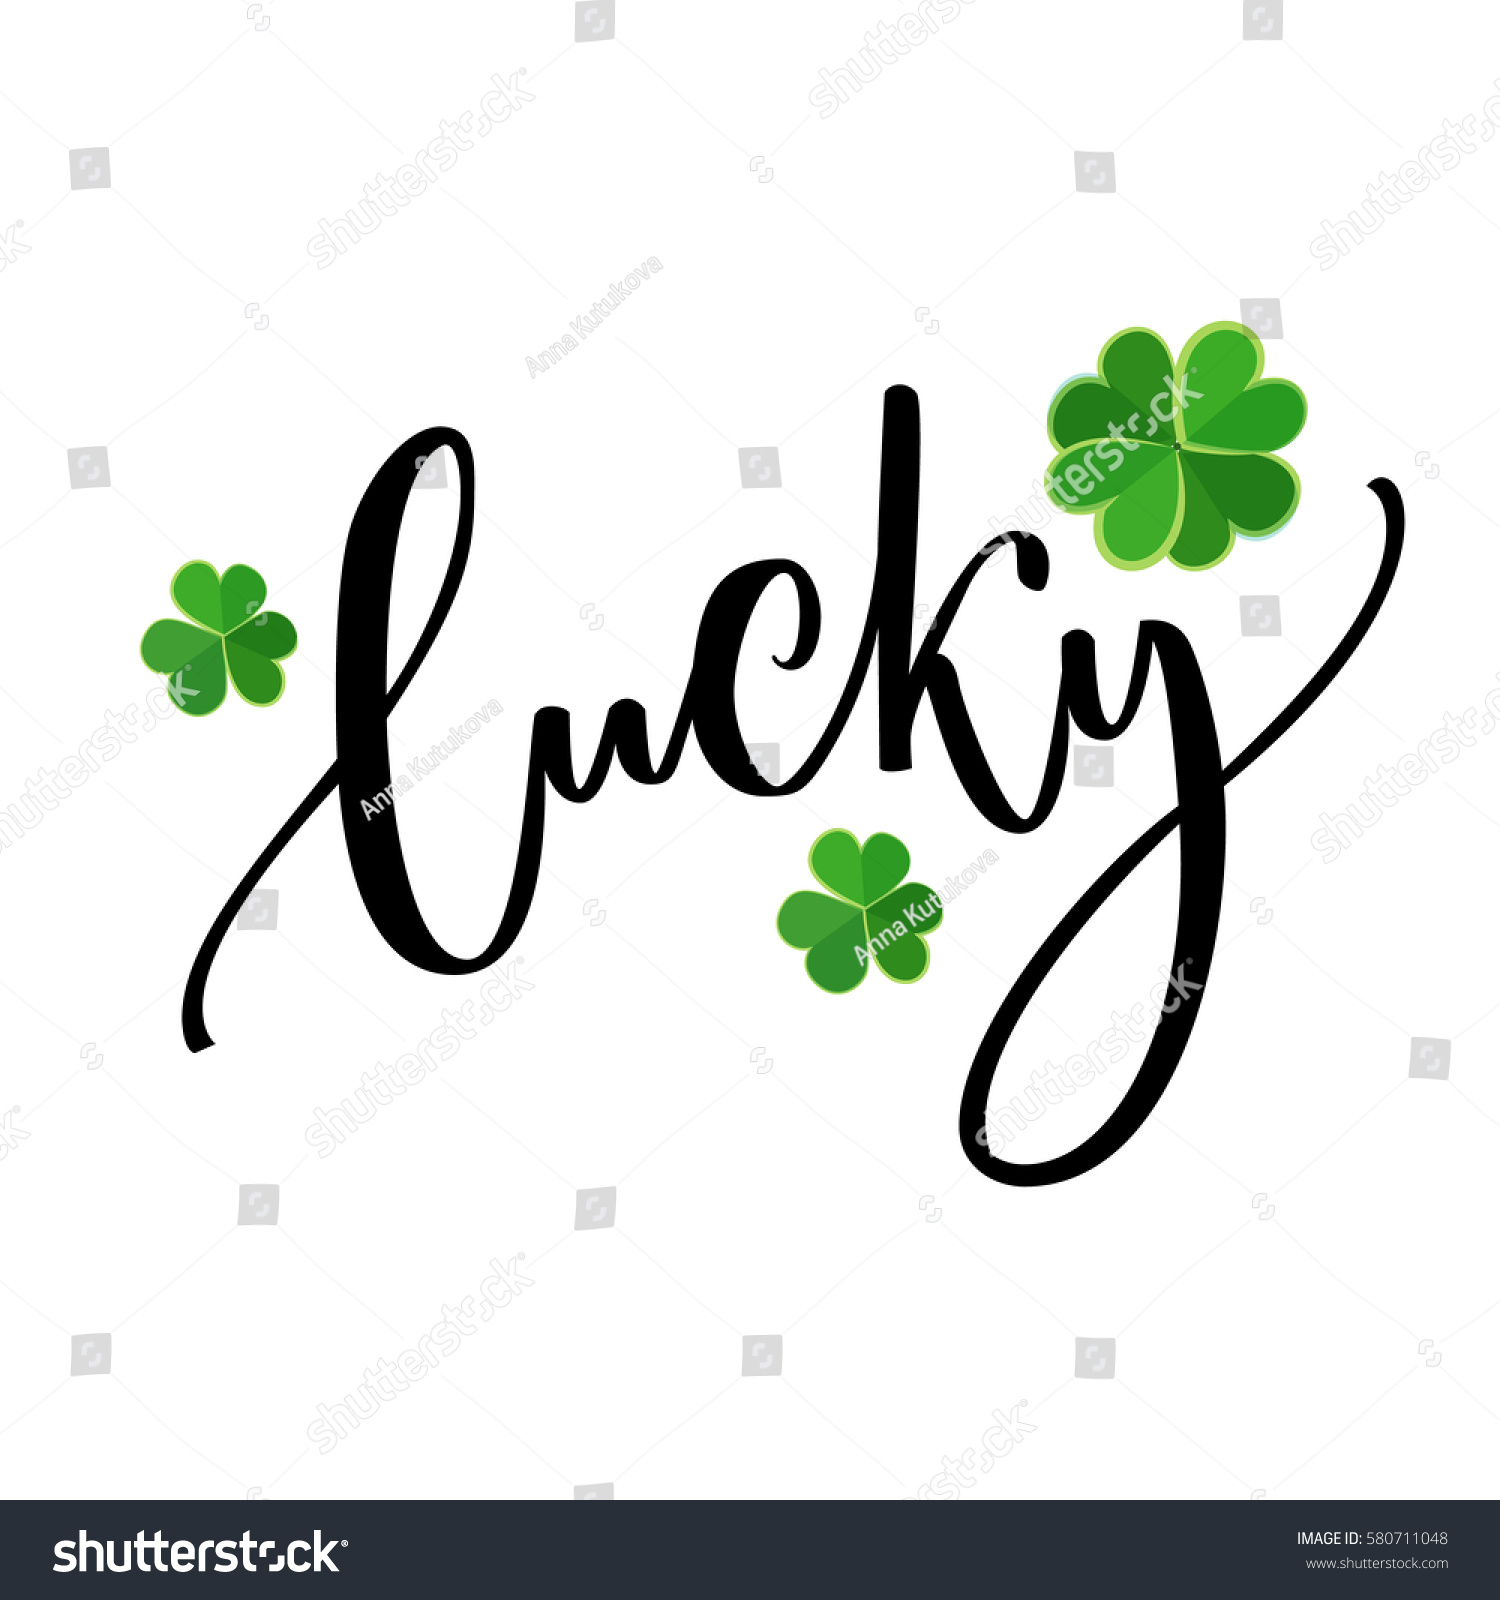 Lucky word - St. Patrick's day lettering for t-shirts and cards. Brush